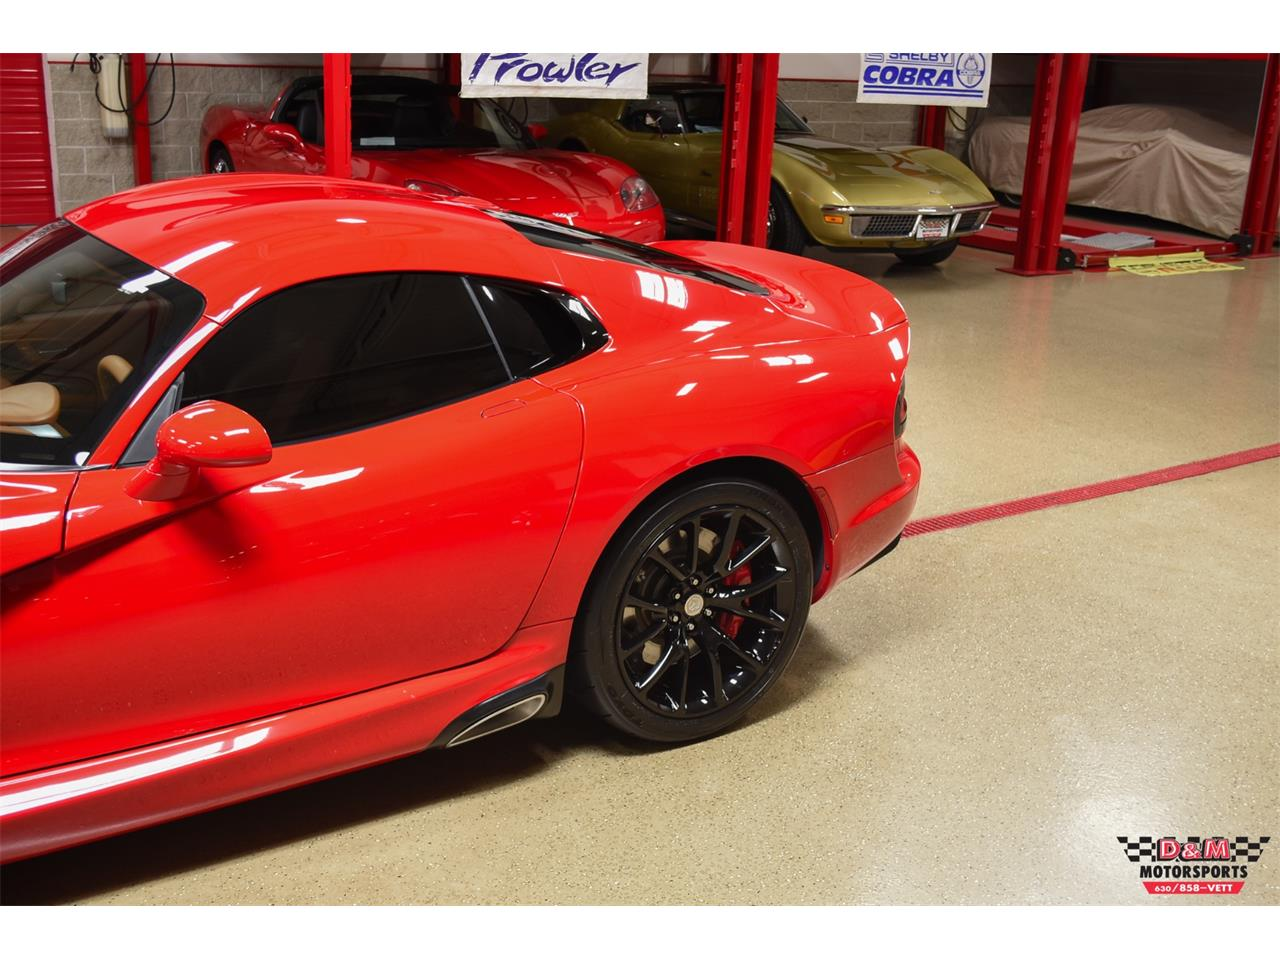 Large Picture of 2013 Dodge Viper - $74,995.00 Offered by D & M Motorsports - PTPC